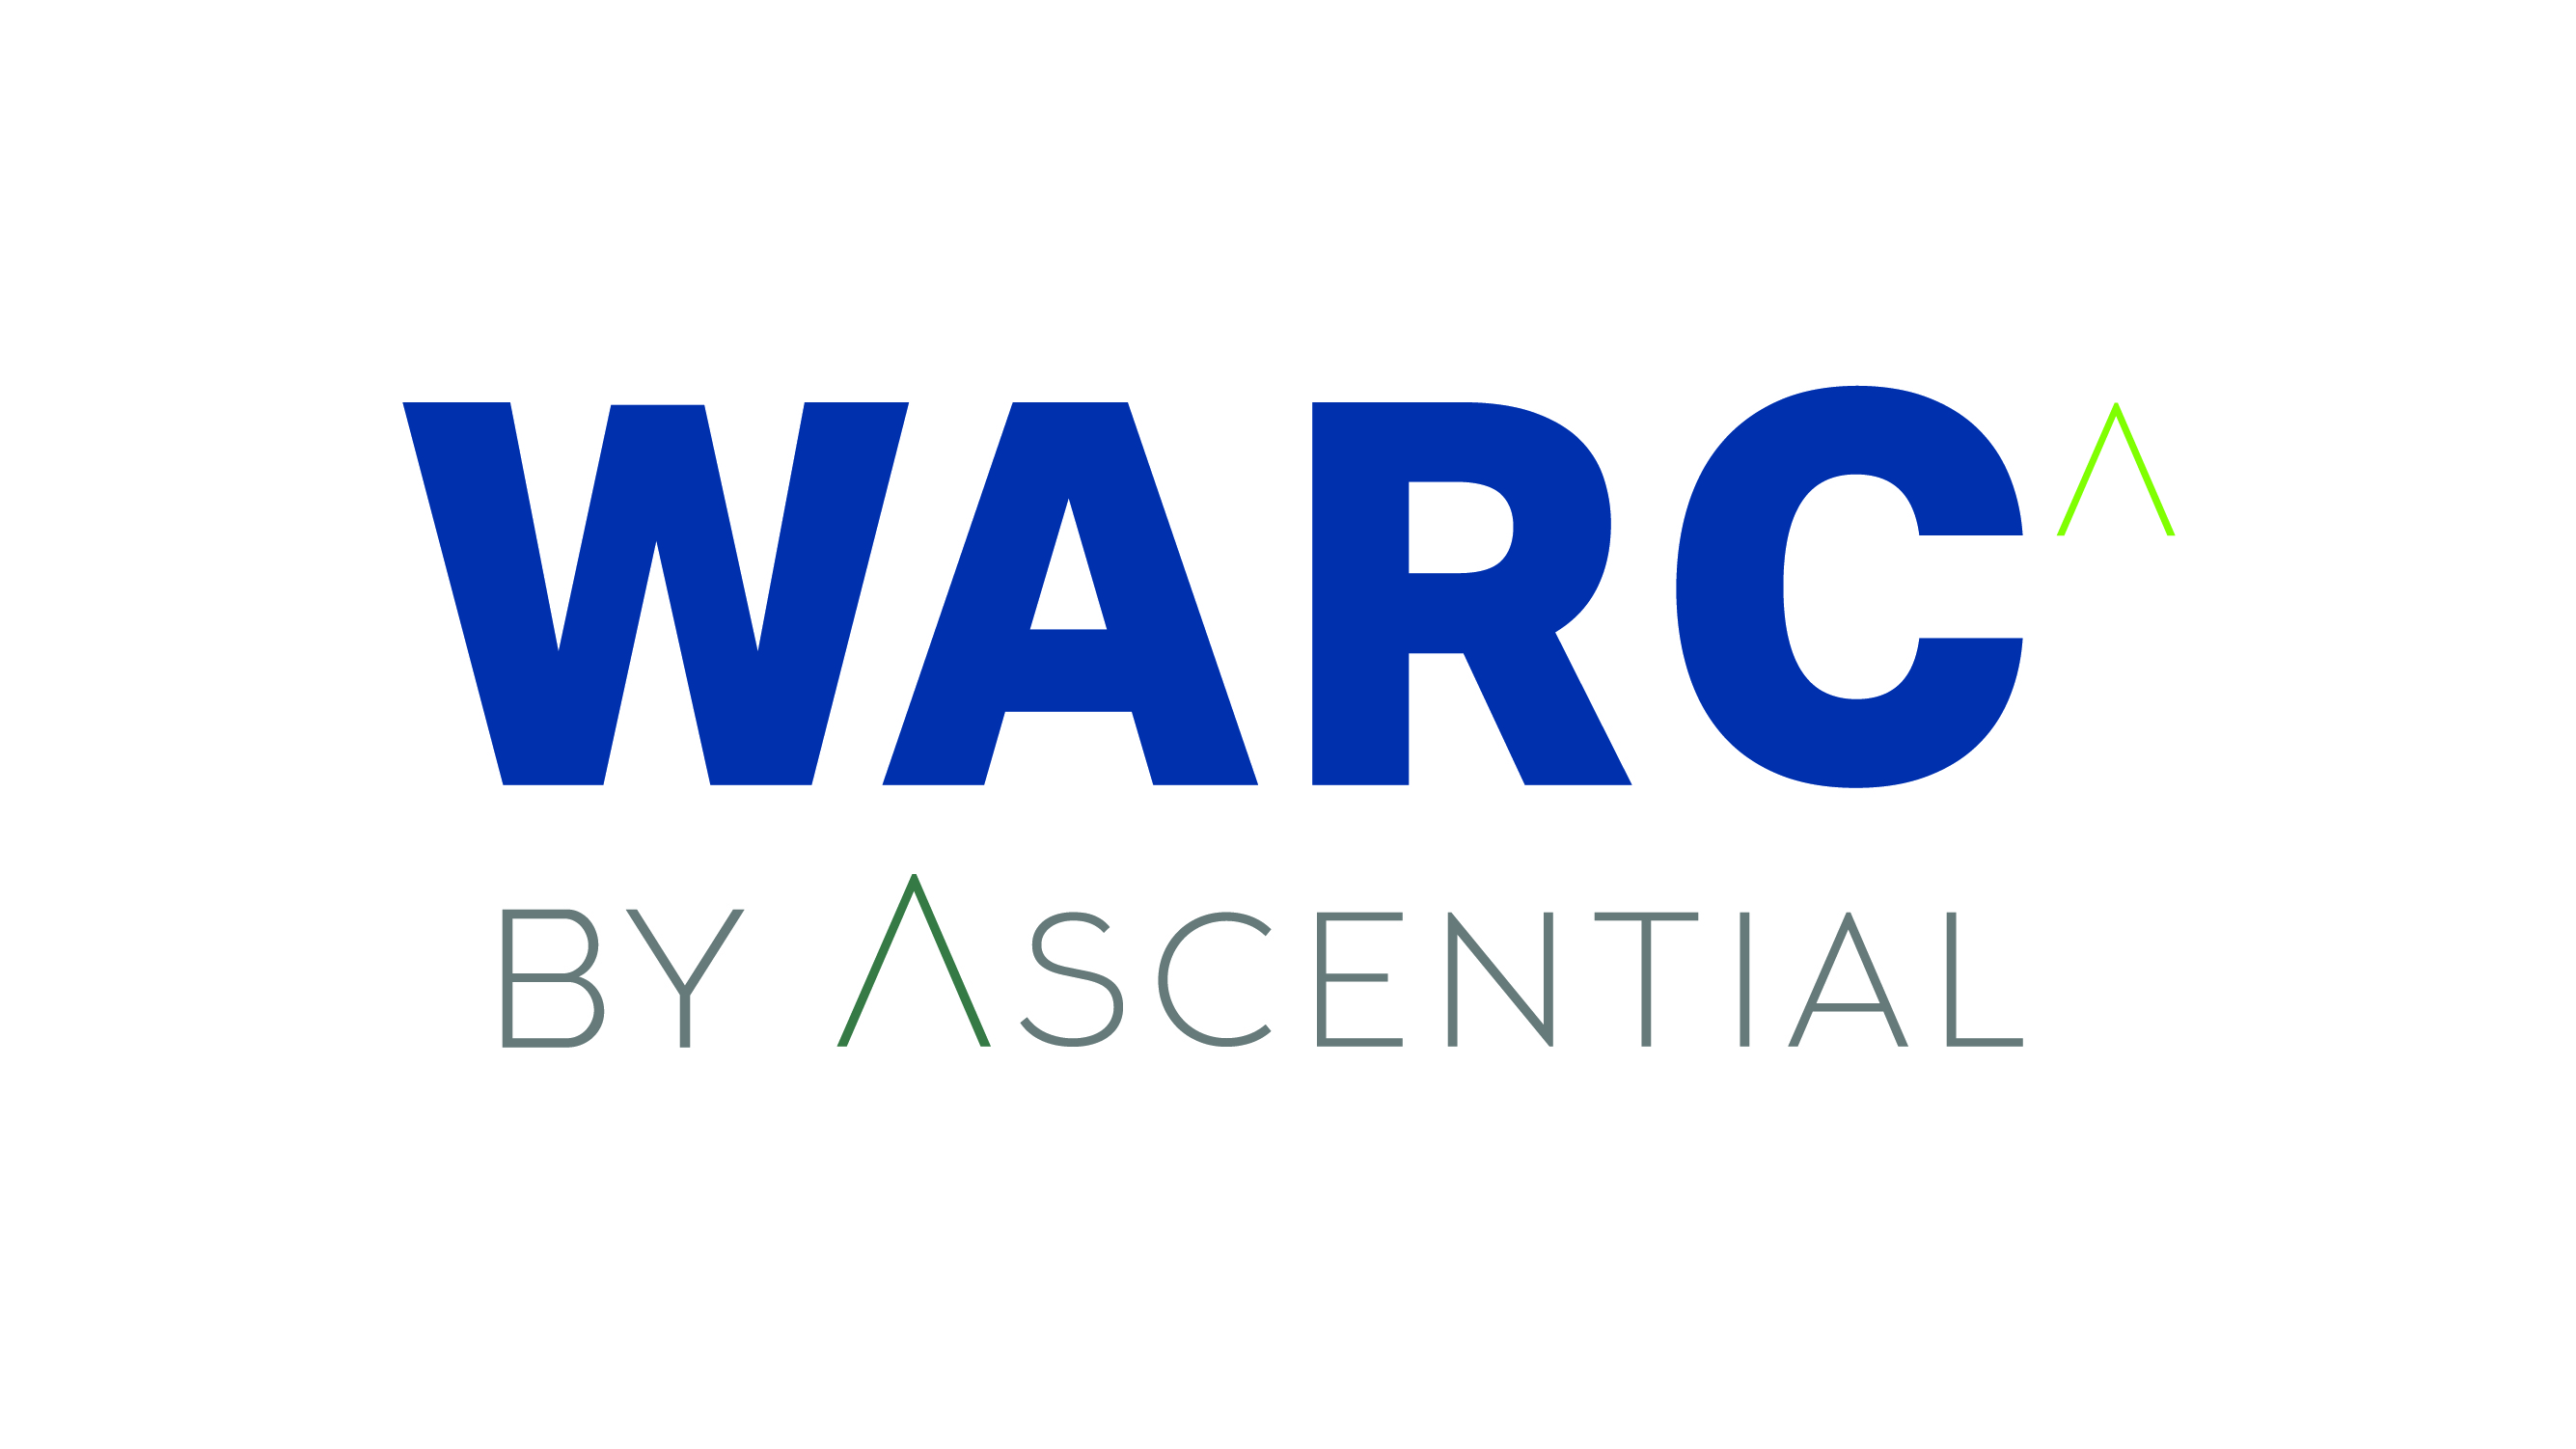 WARC By Ascential Interview with Florian Gramshammer from Impact